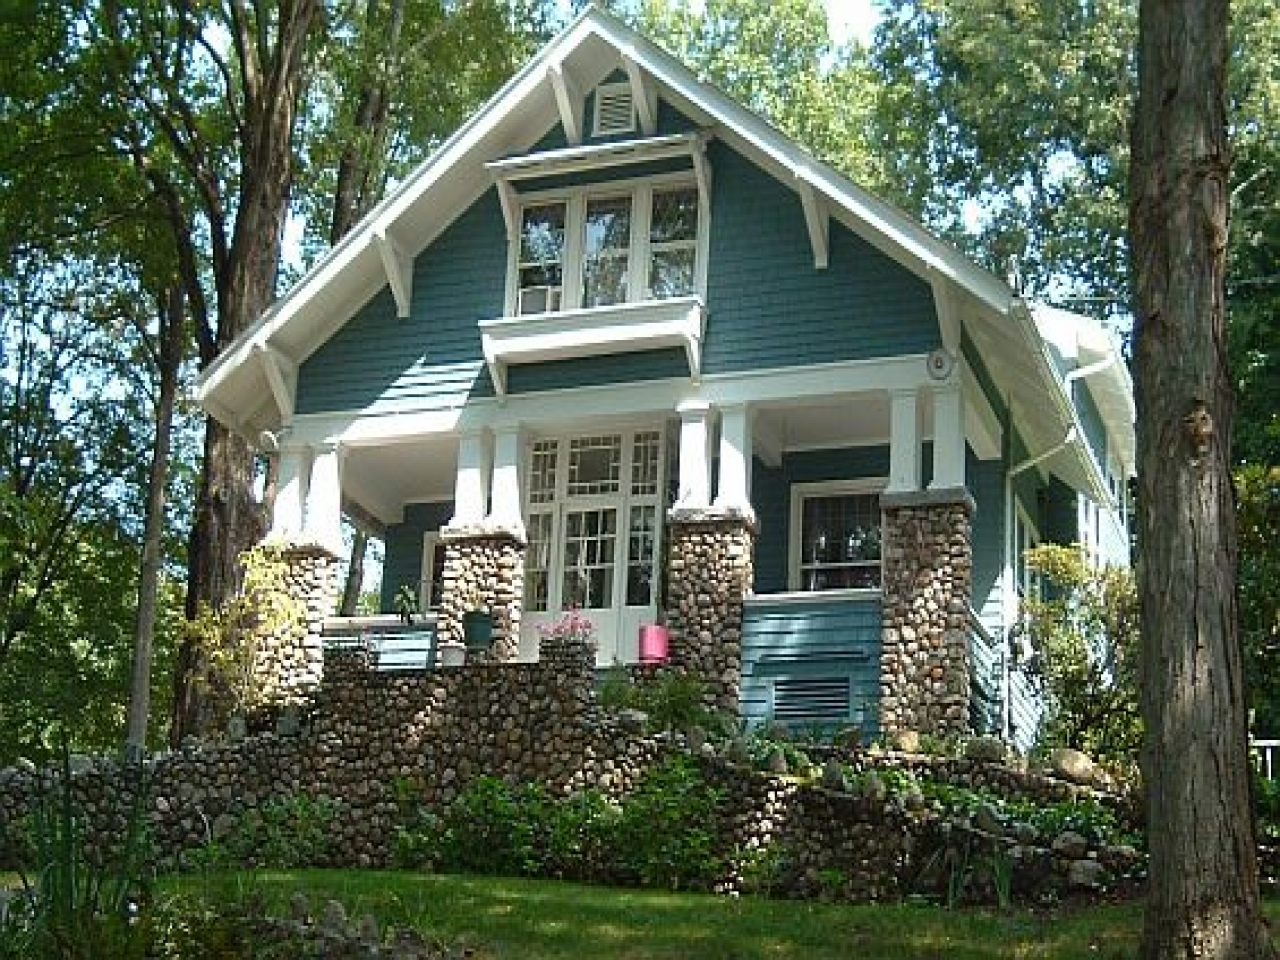 Historic craftsman bungalow houses modern bungalow house - What is a bungalow house ...